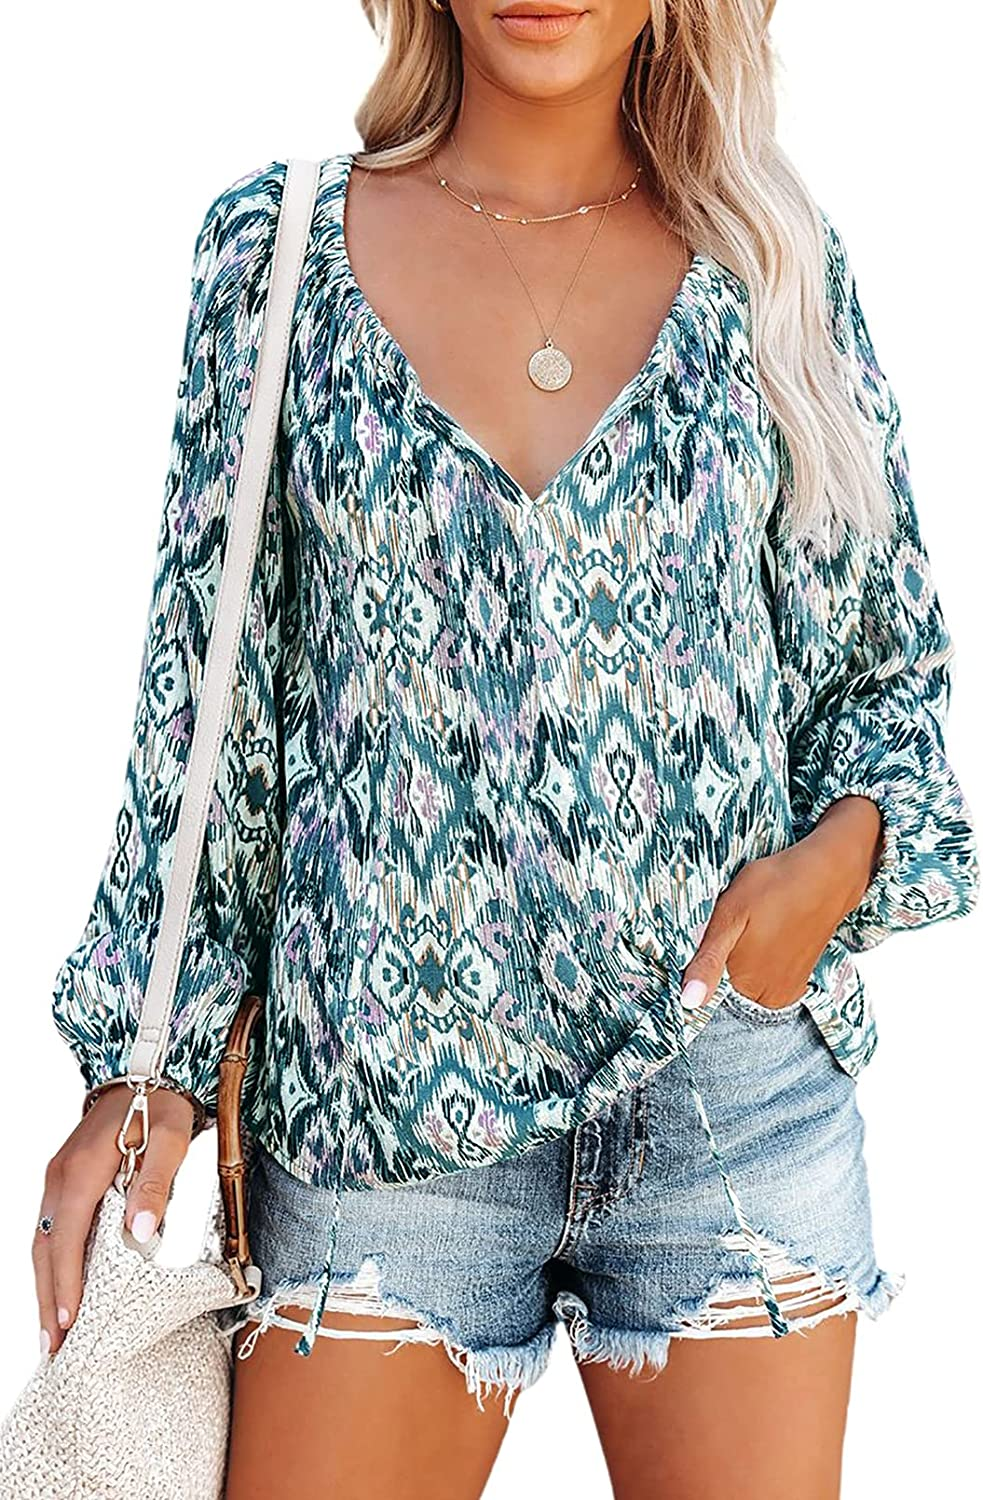 HOTAPEI Women's Casual Fashion Printed Shirt Long Sleeve V Neck Pullover Top Blouse Tees Shirts